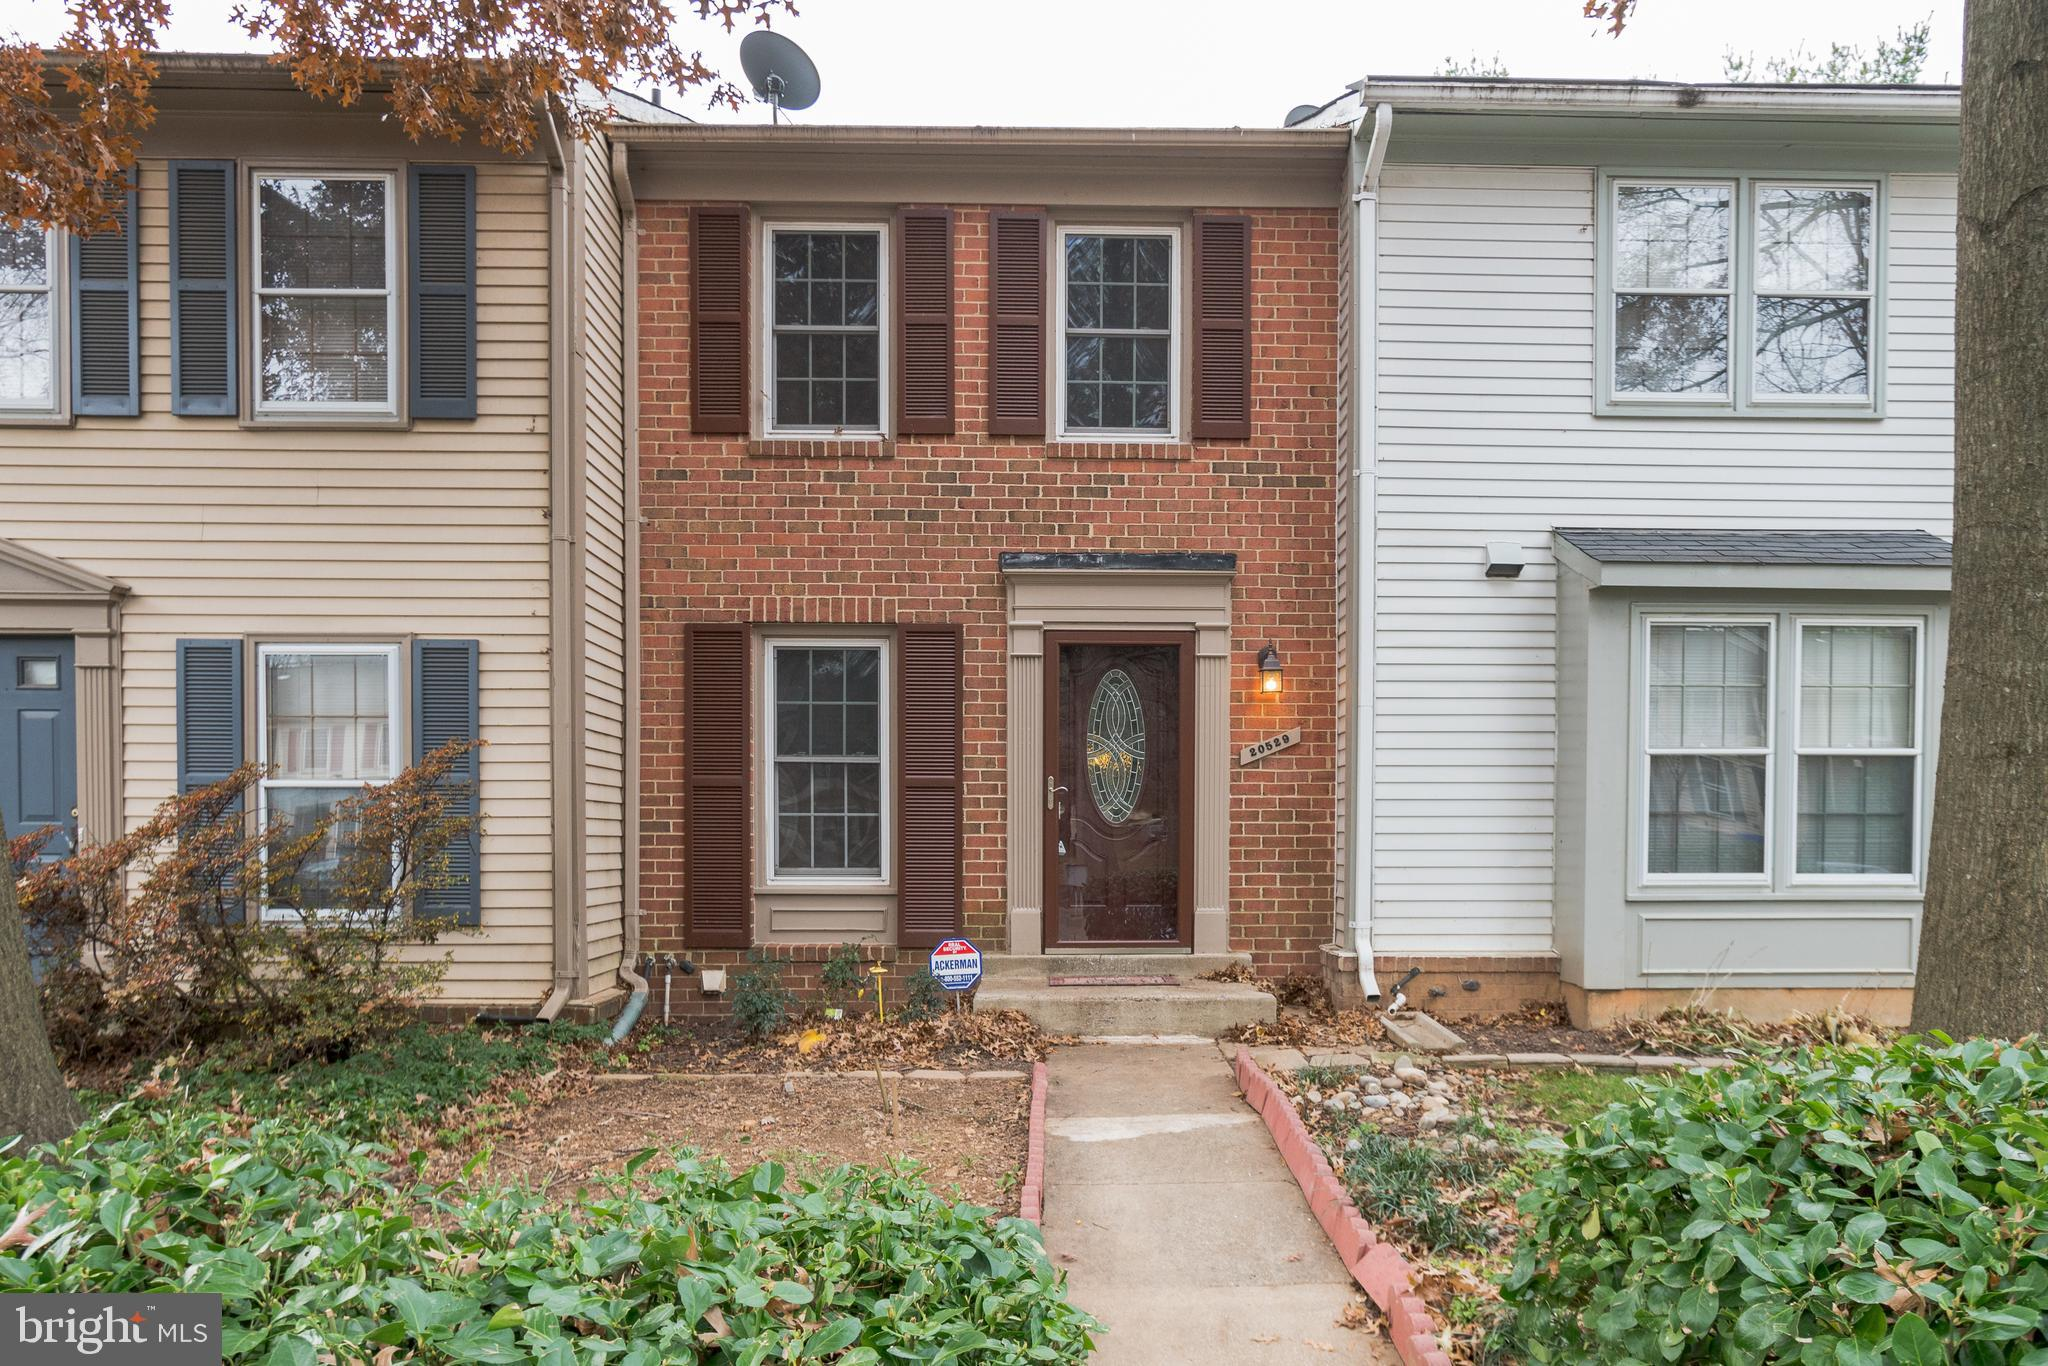 OPEN HOUSE 1-3pm Sat. 12/14/19 Affordable brick front townhome ready for immediate occupancy! Over $